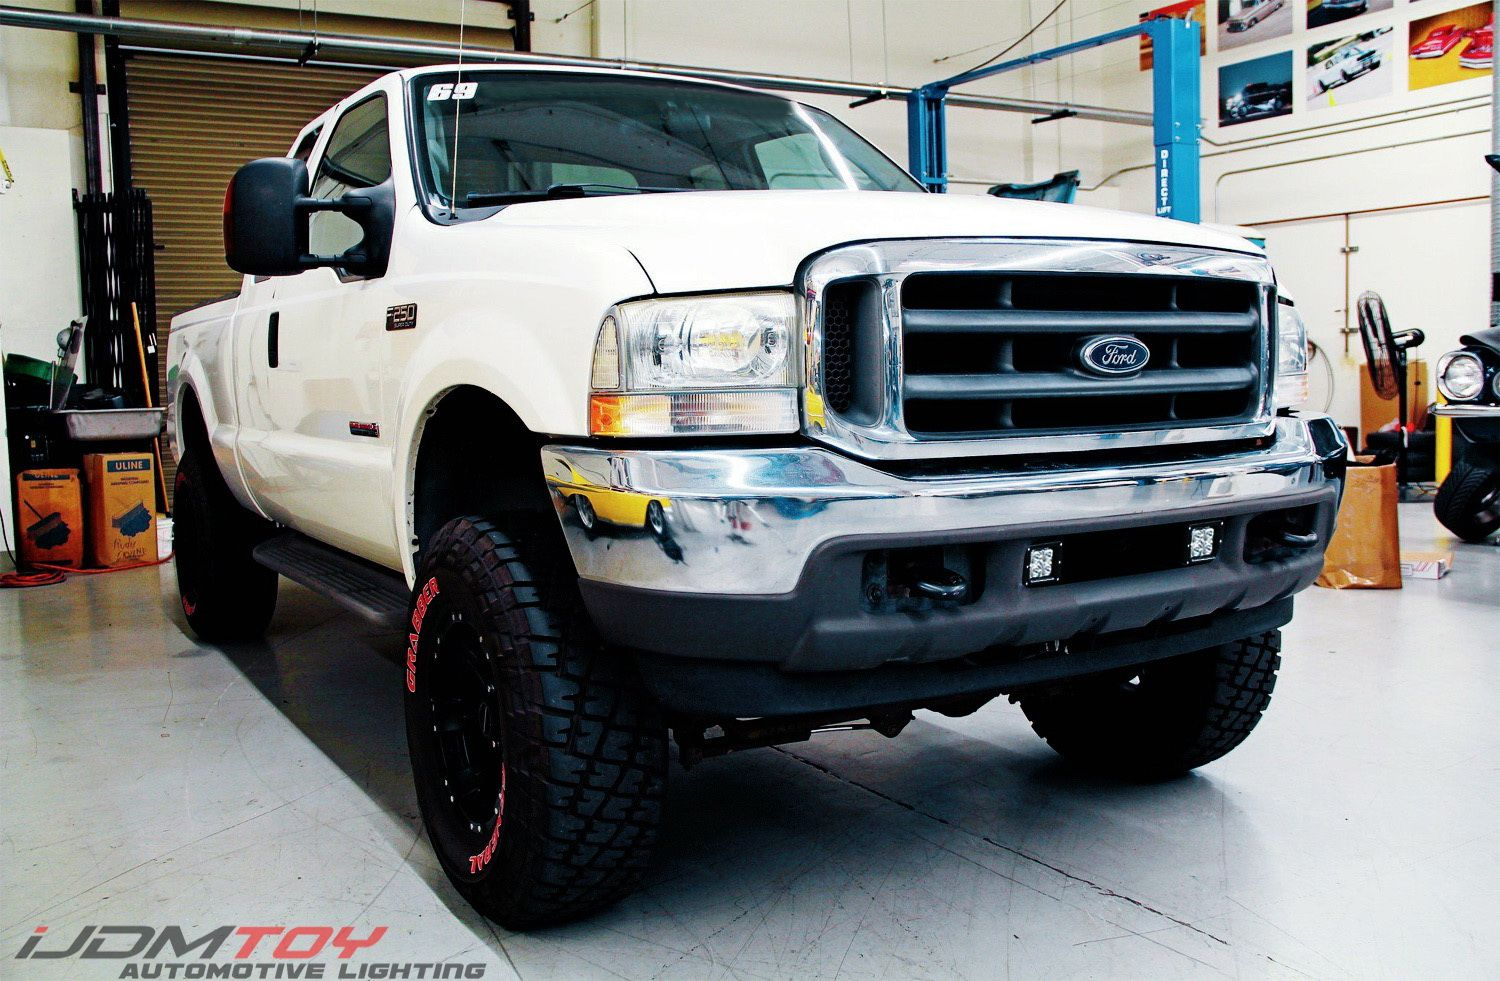 Led Pod Light Fog Lamp Kit For 1999 04 Ford F250 F350 F450 2 20w Cree Led Cubes Lower Bumper Fog Location Mounting Brackets Switch Wiring F250 Ford F250 Super Duty Trucks